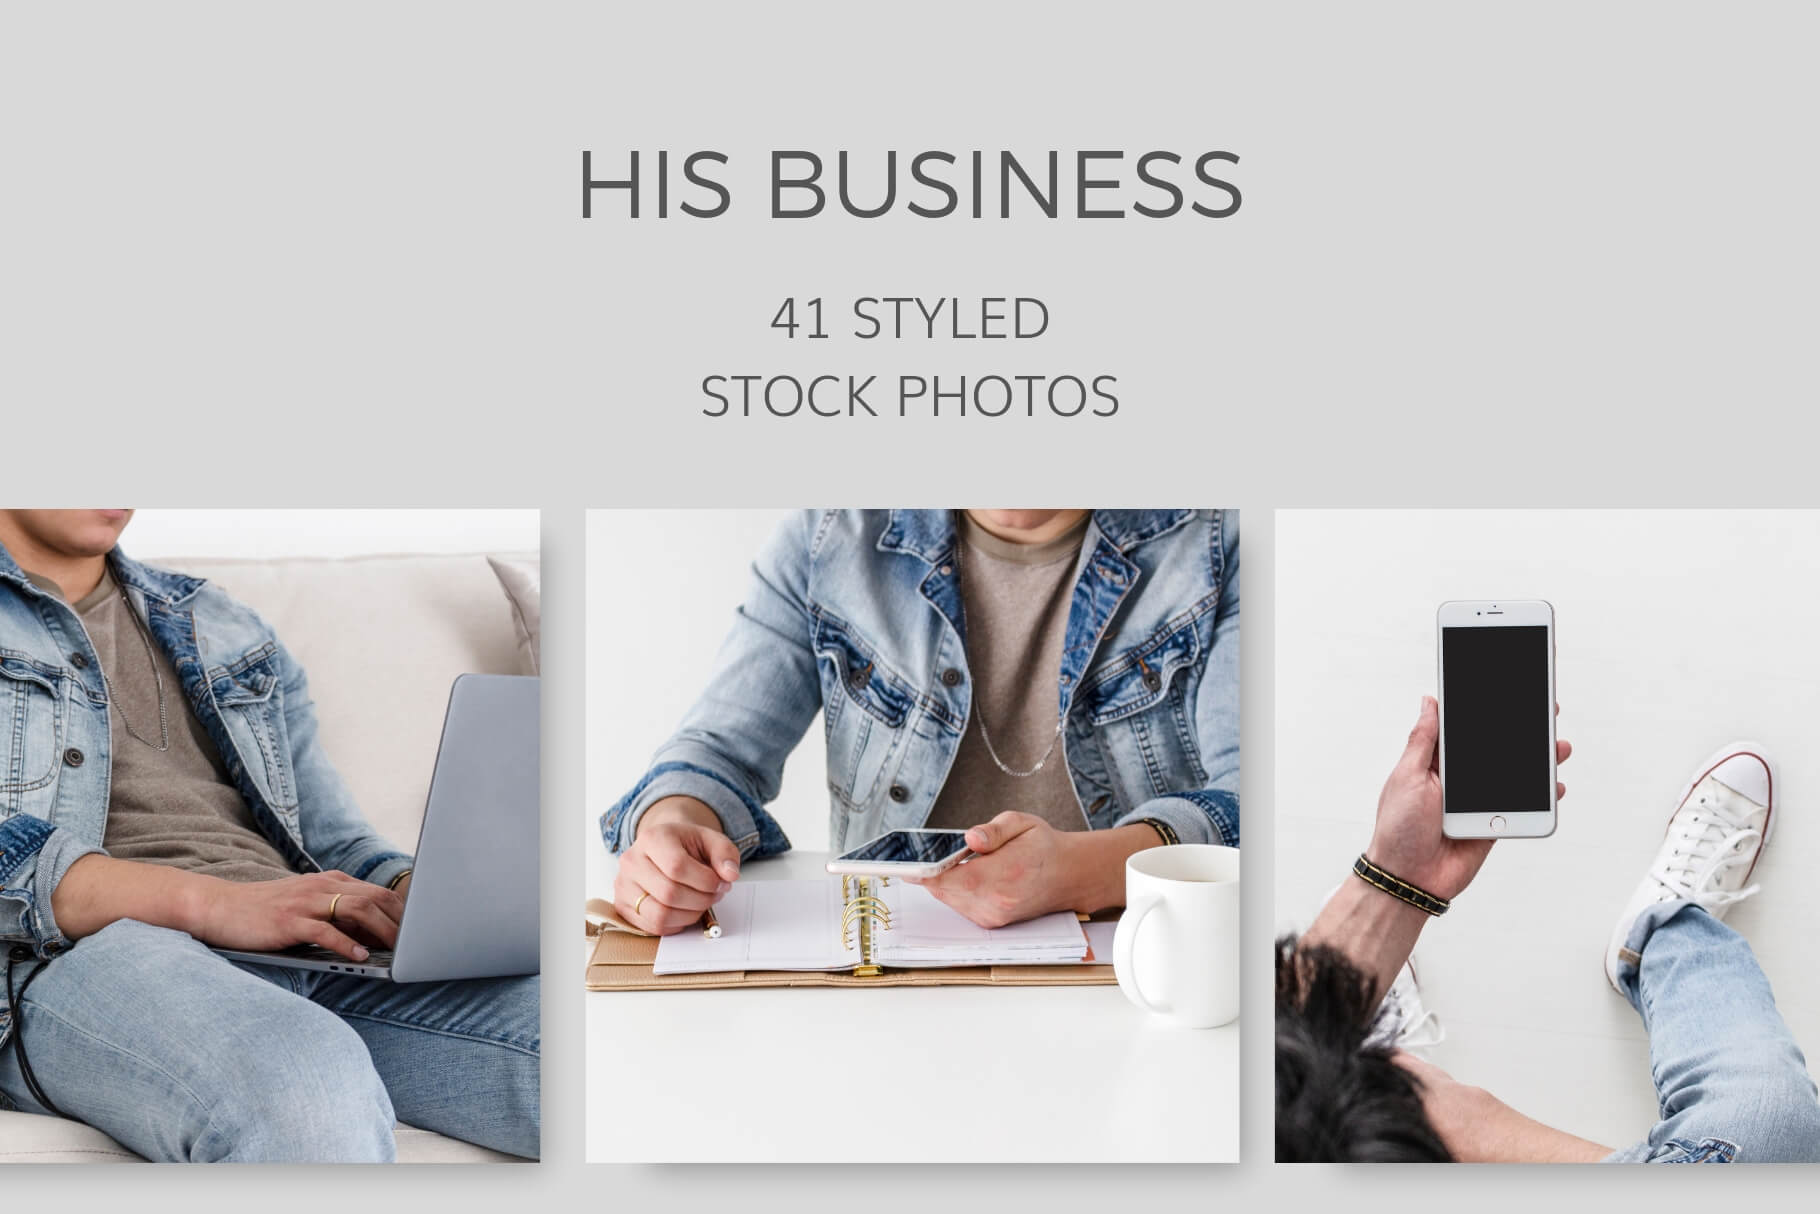 His Business Styled Stock Photos for Men